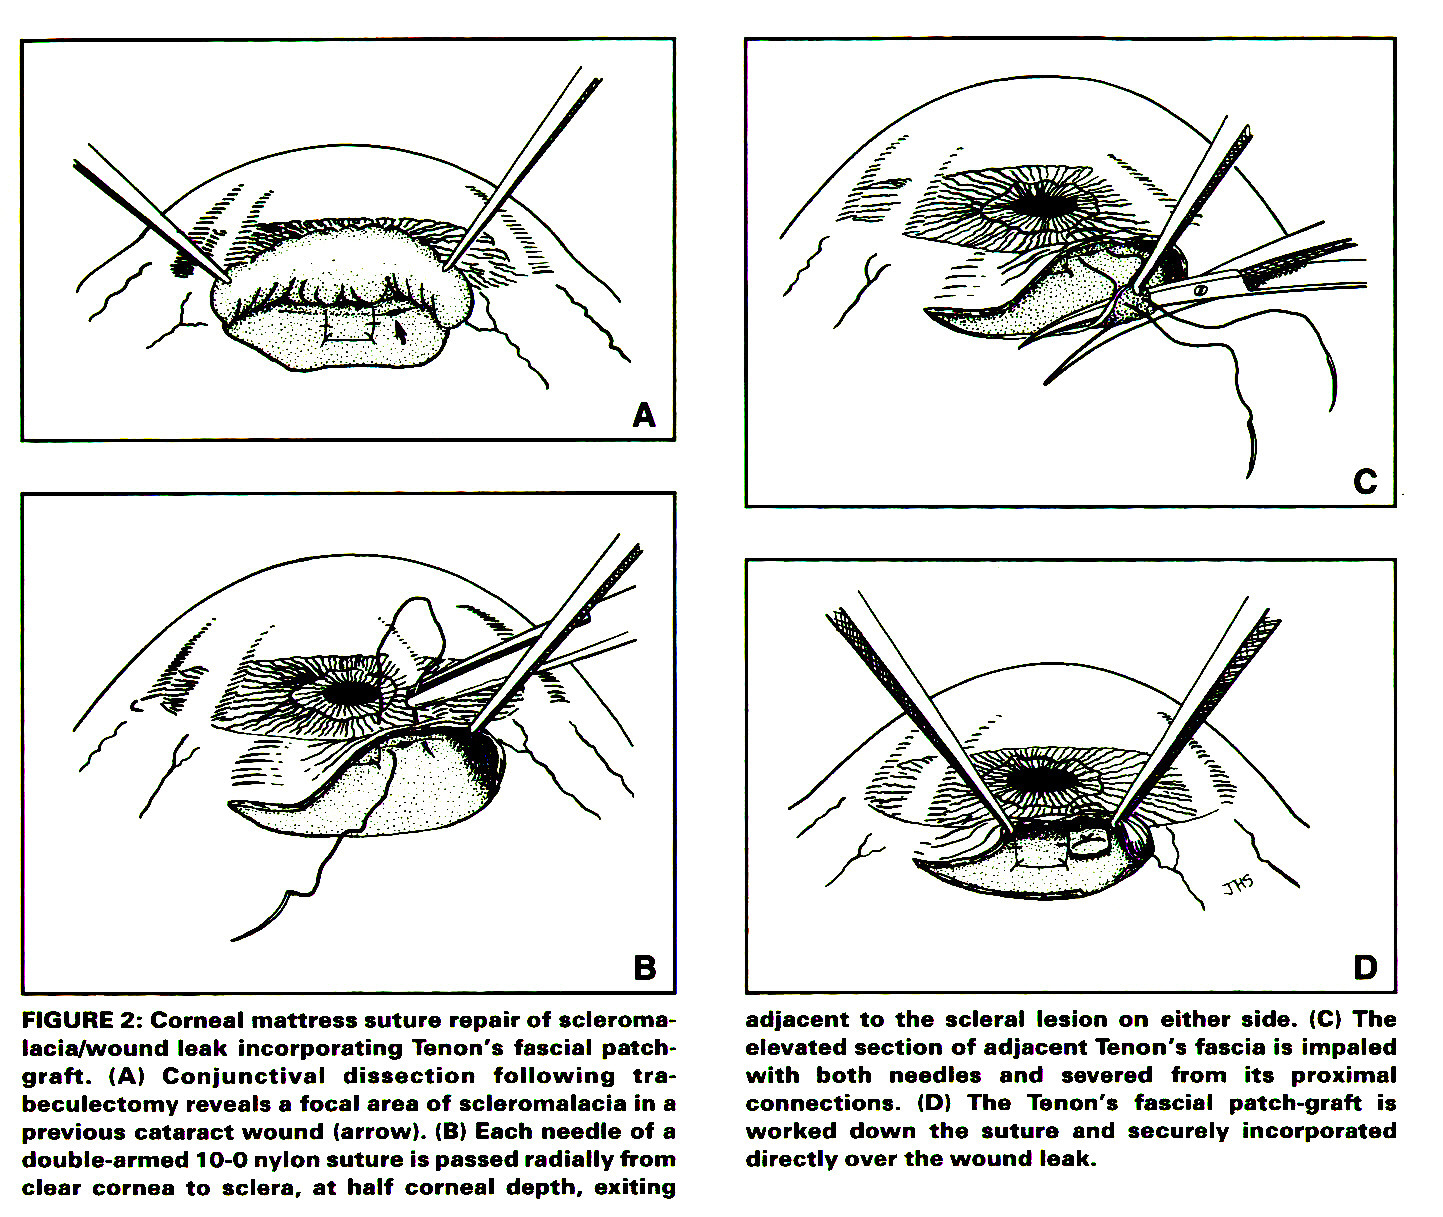 Applications for a Corneal Mattress Suture in Anterior